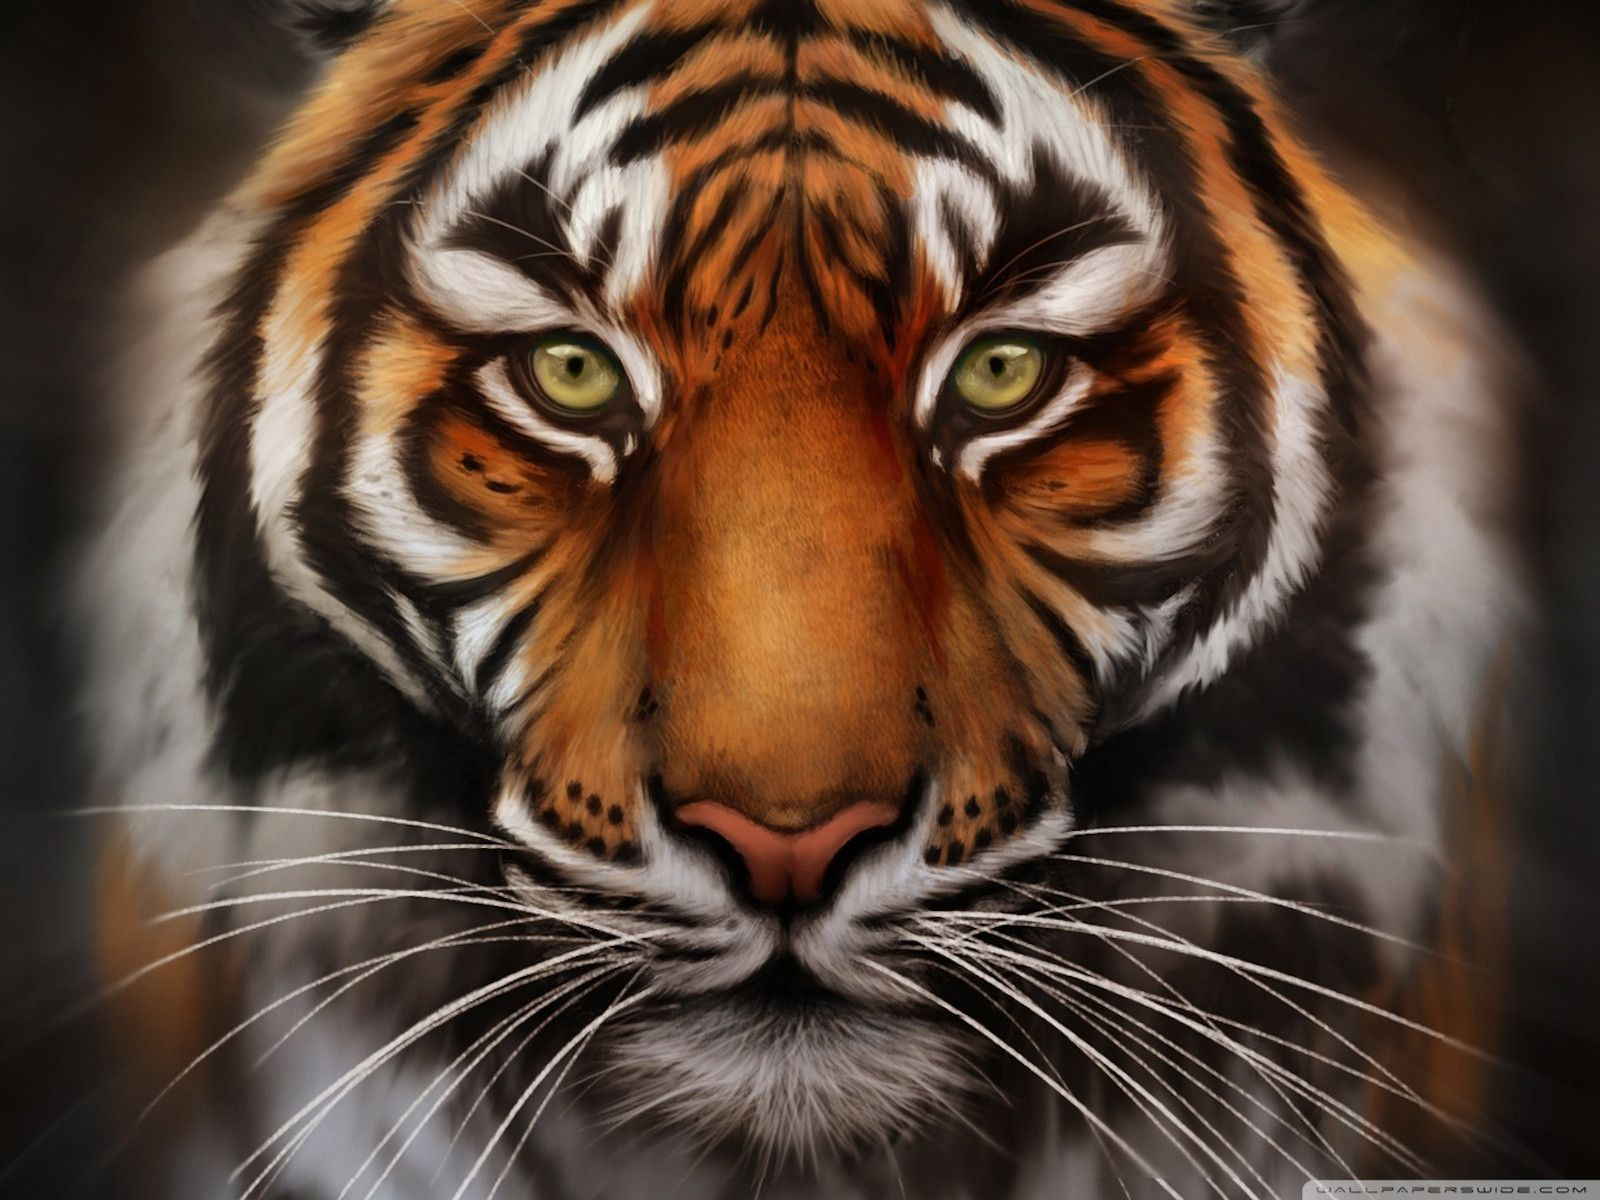 Tiger Face HD Wallpaper